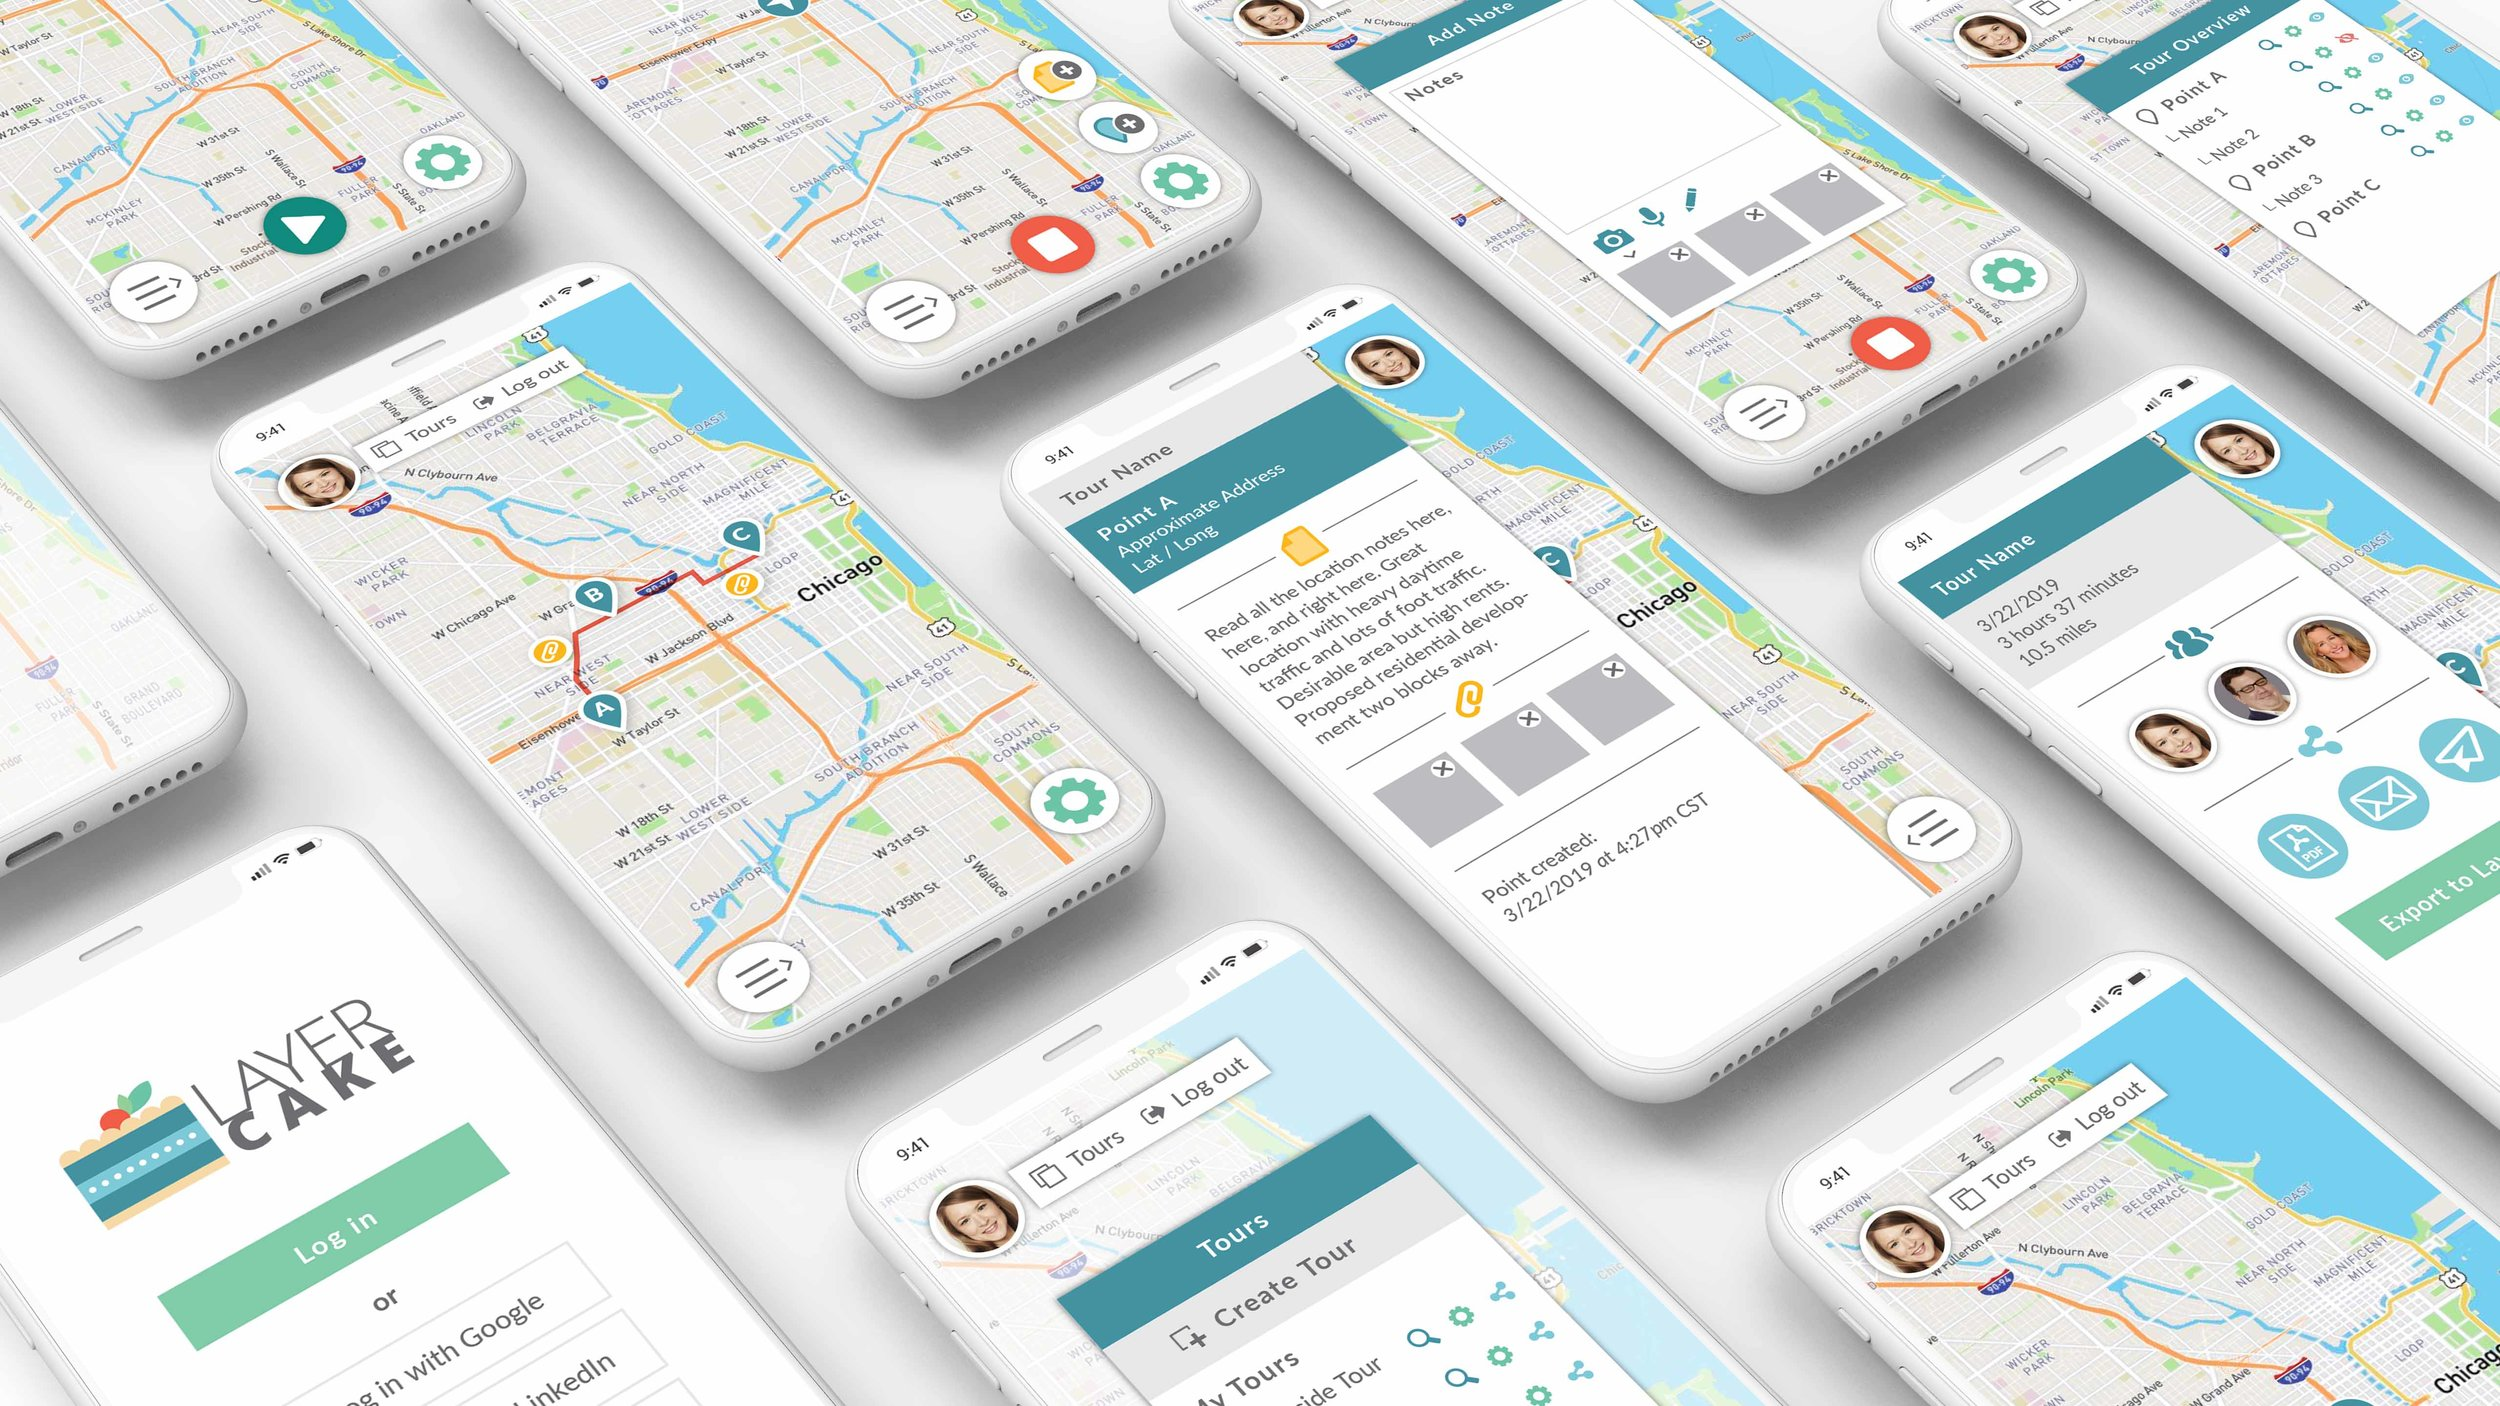 Multiple-Isometric-iPhone-MockUps_LC-jtt.jpg